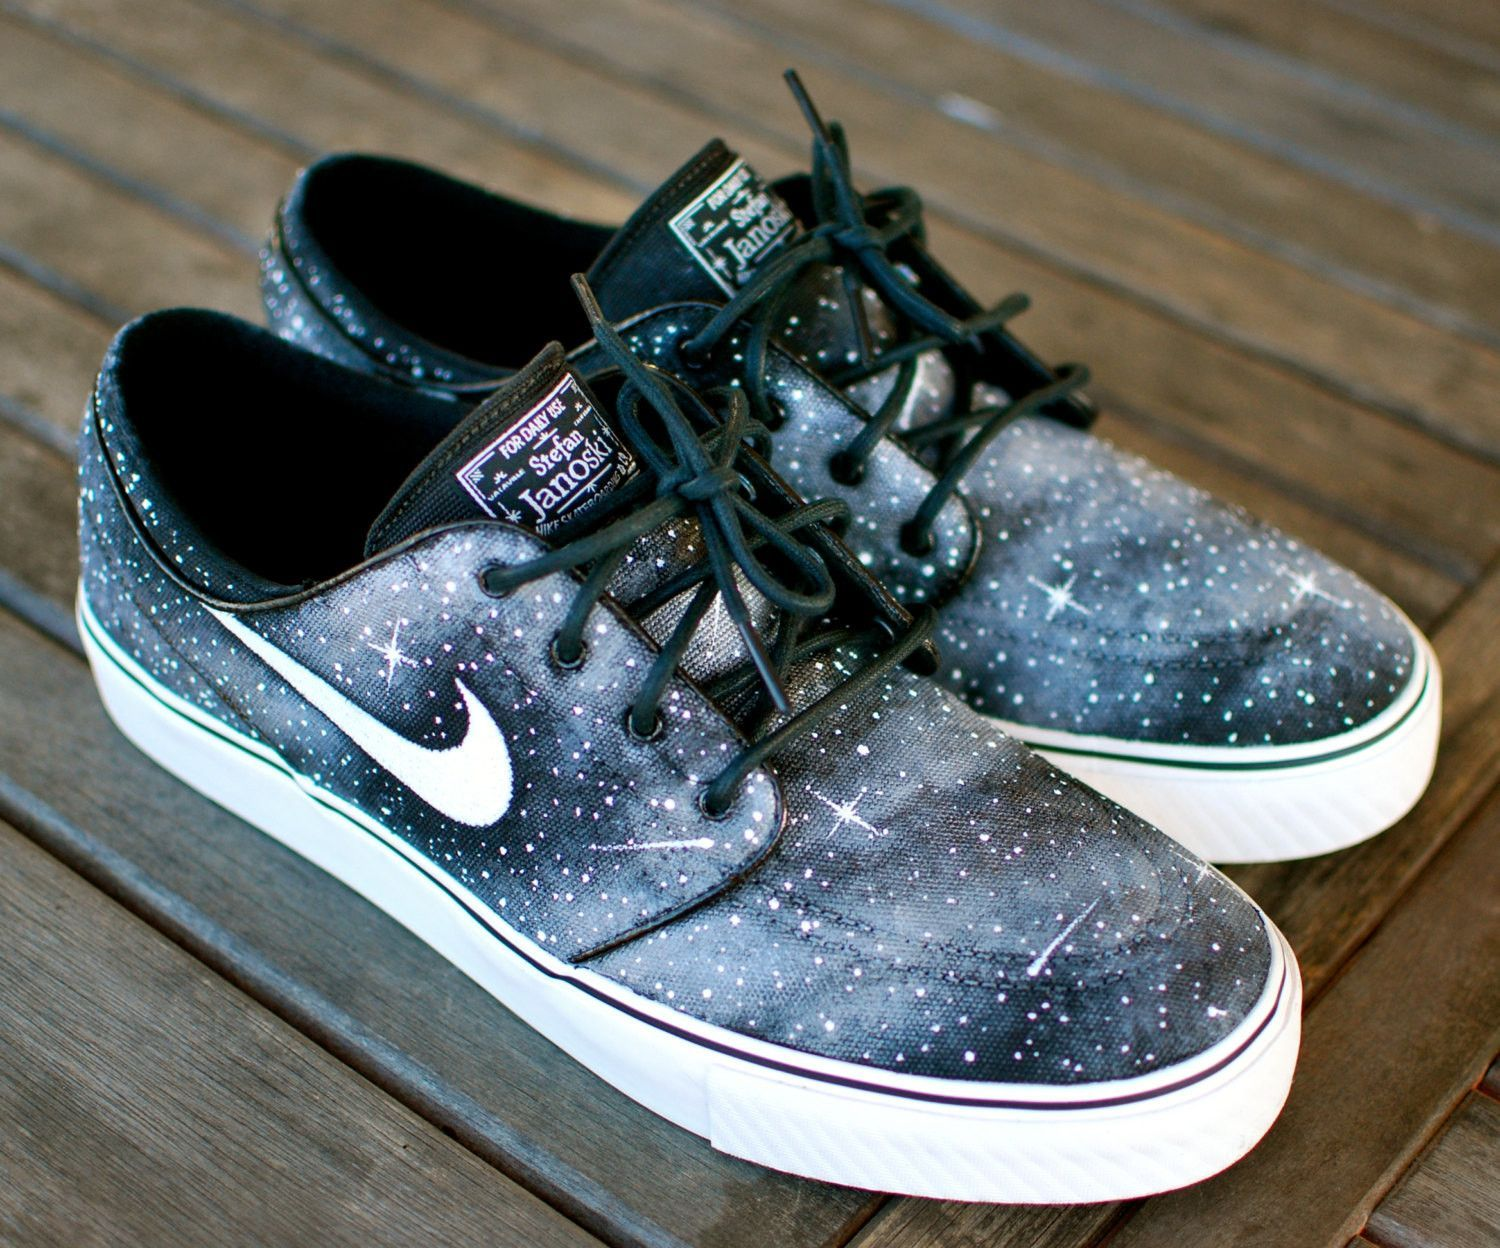 Custom Hand Painted Twilight Zone Black and White Galaxy Nike Stefan Janoski  Skate Shoes 56b175a2b